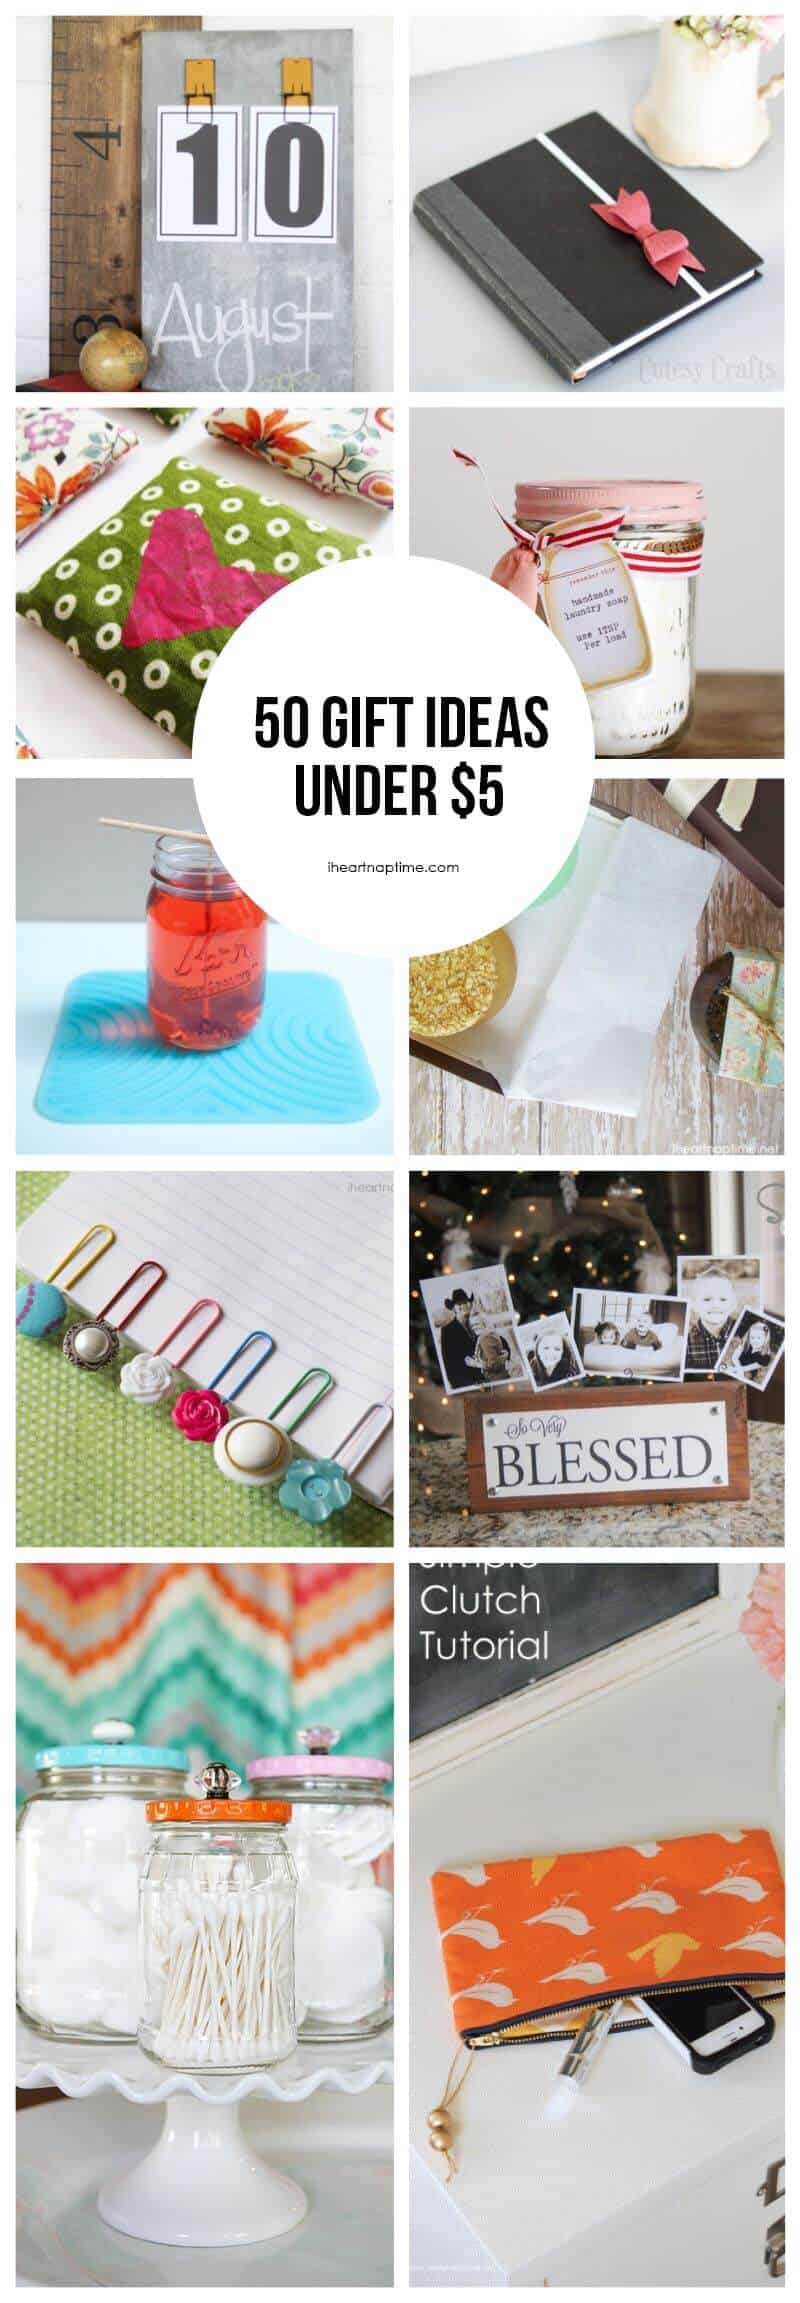 50 homemade gift ideas to make for under 5 i heart nap time Ideas for womens christmas gifts under 25